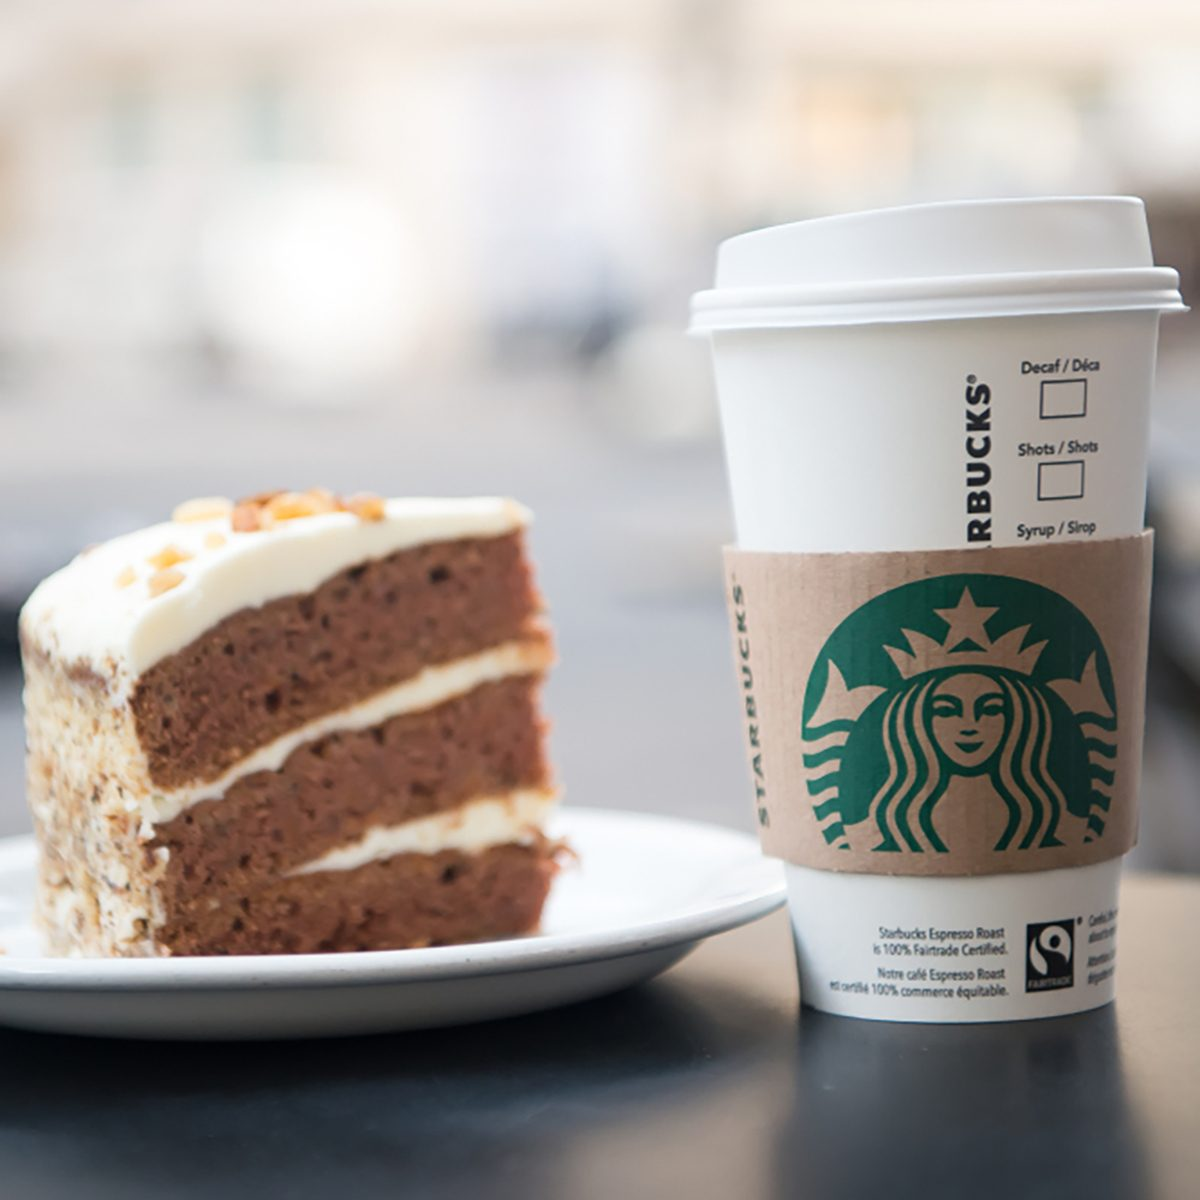 A tall Starbucks coffee in starbucks coffee shop with cake.